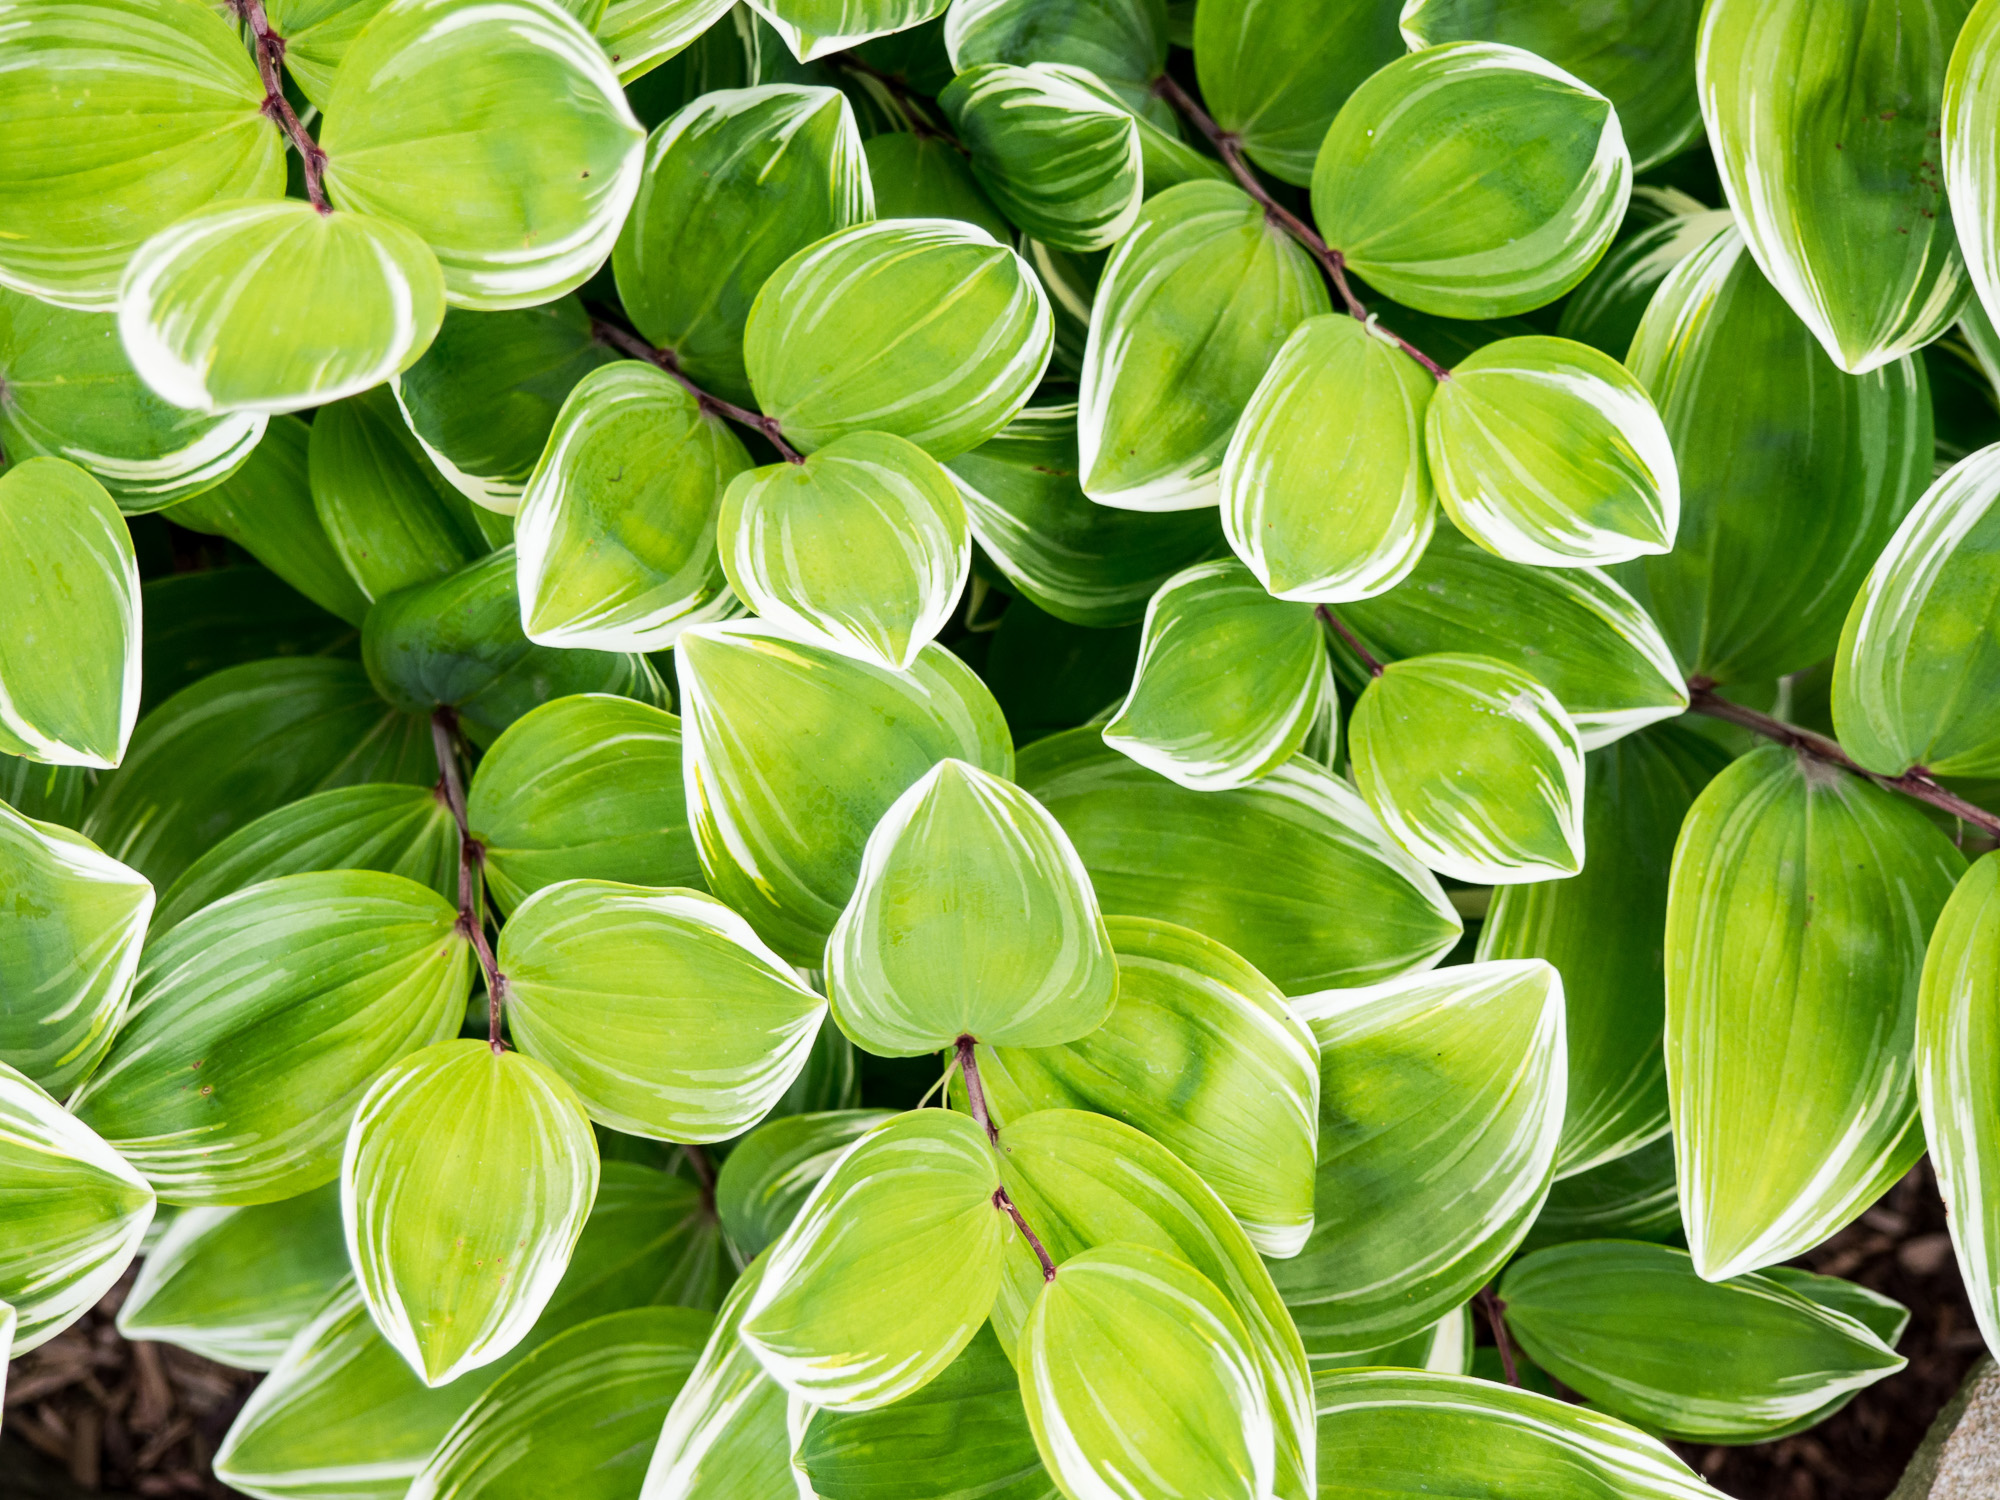 Overhead view of green and white leaves